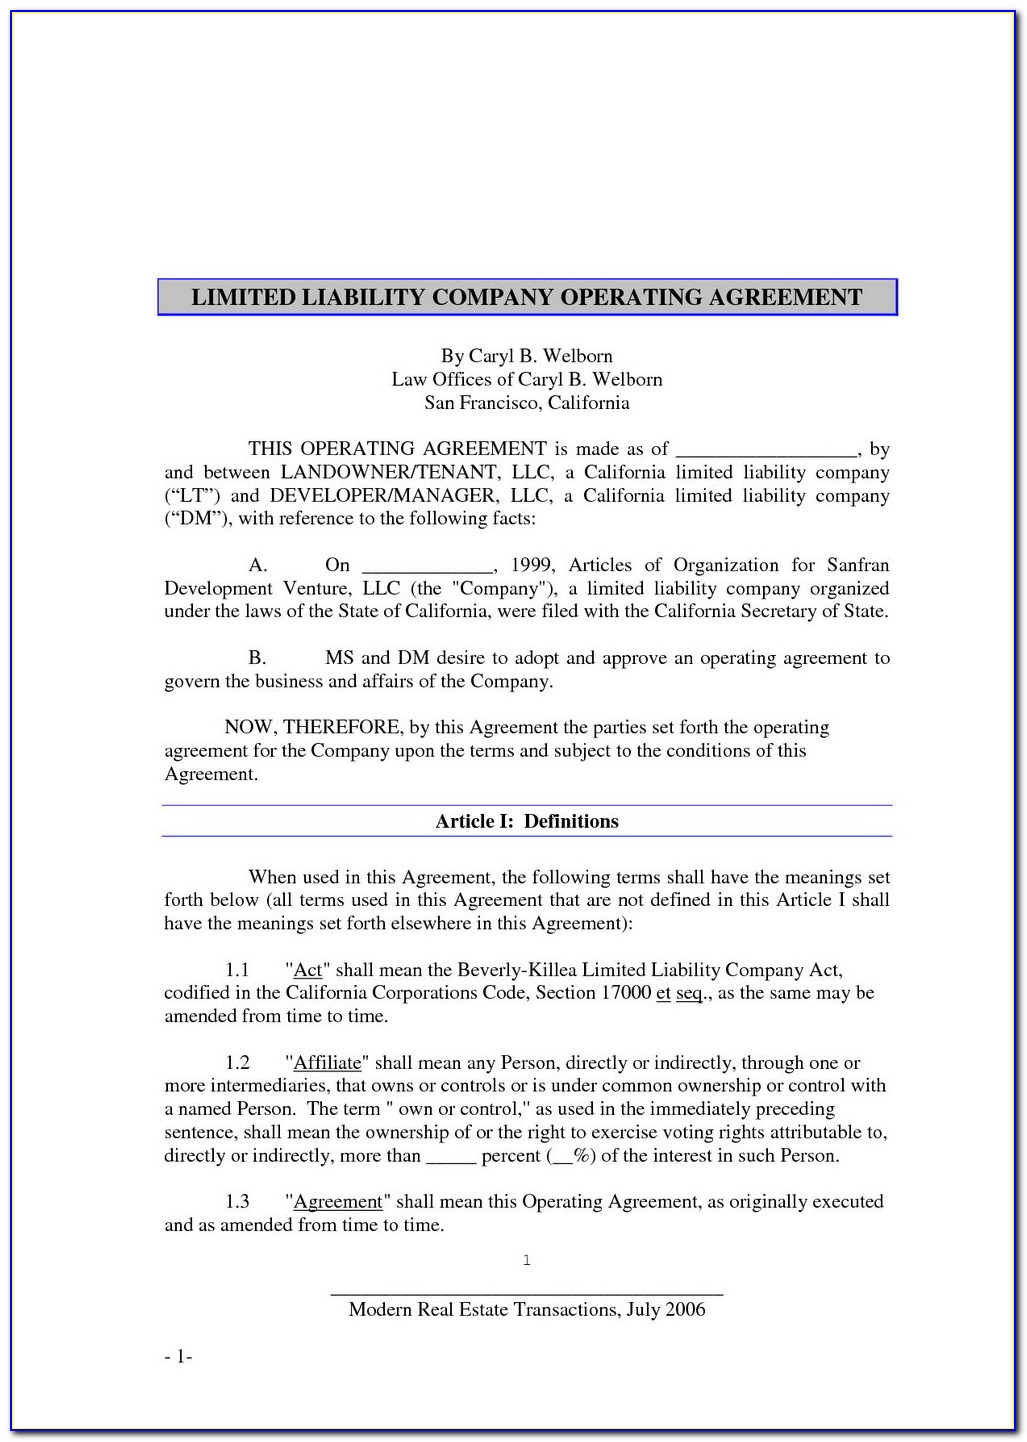 Benefits Of Forming An Llc In Nj